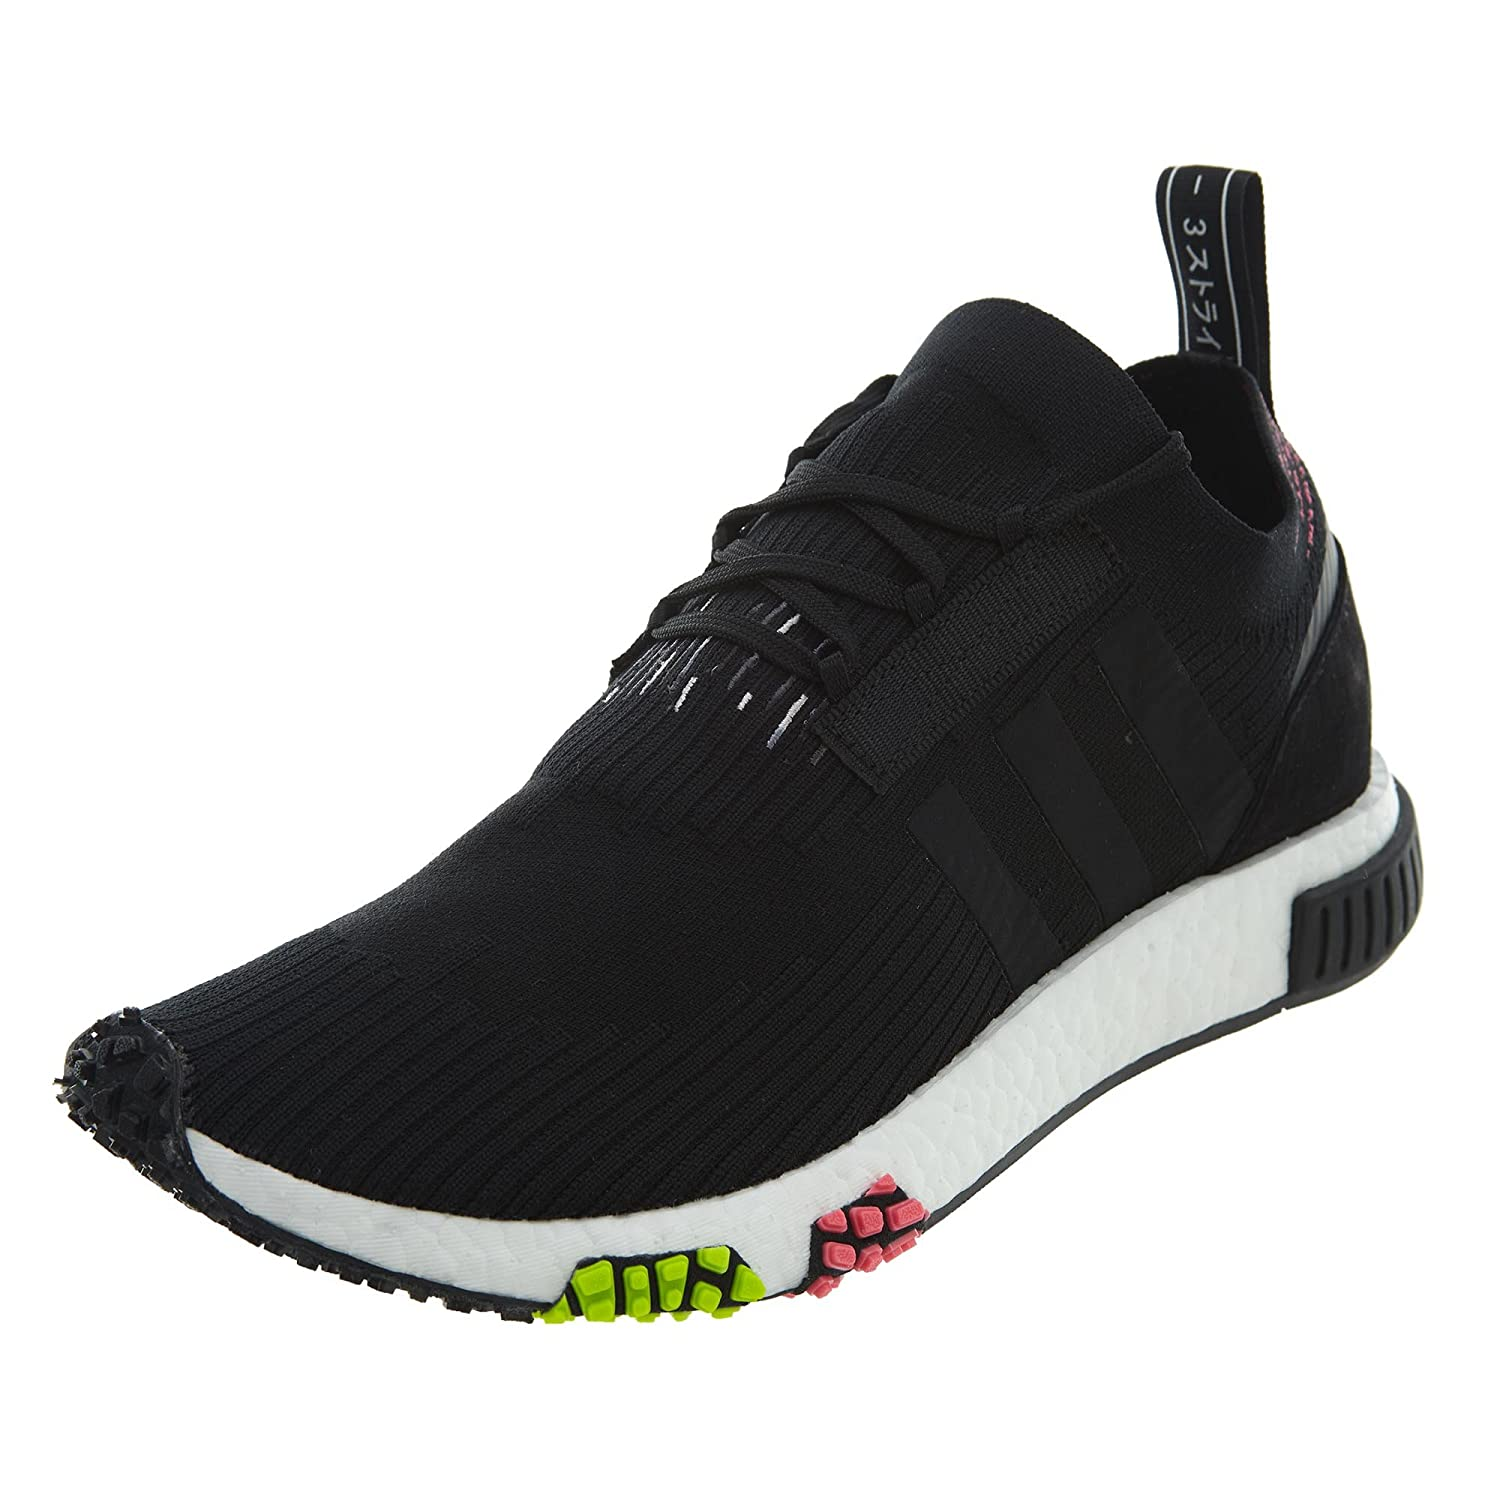 Image of adidas Men's NMD_Racer Primeknit Running Shoe Athletic